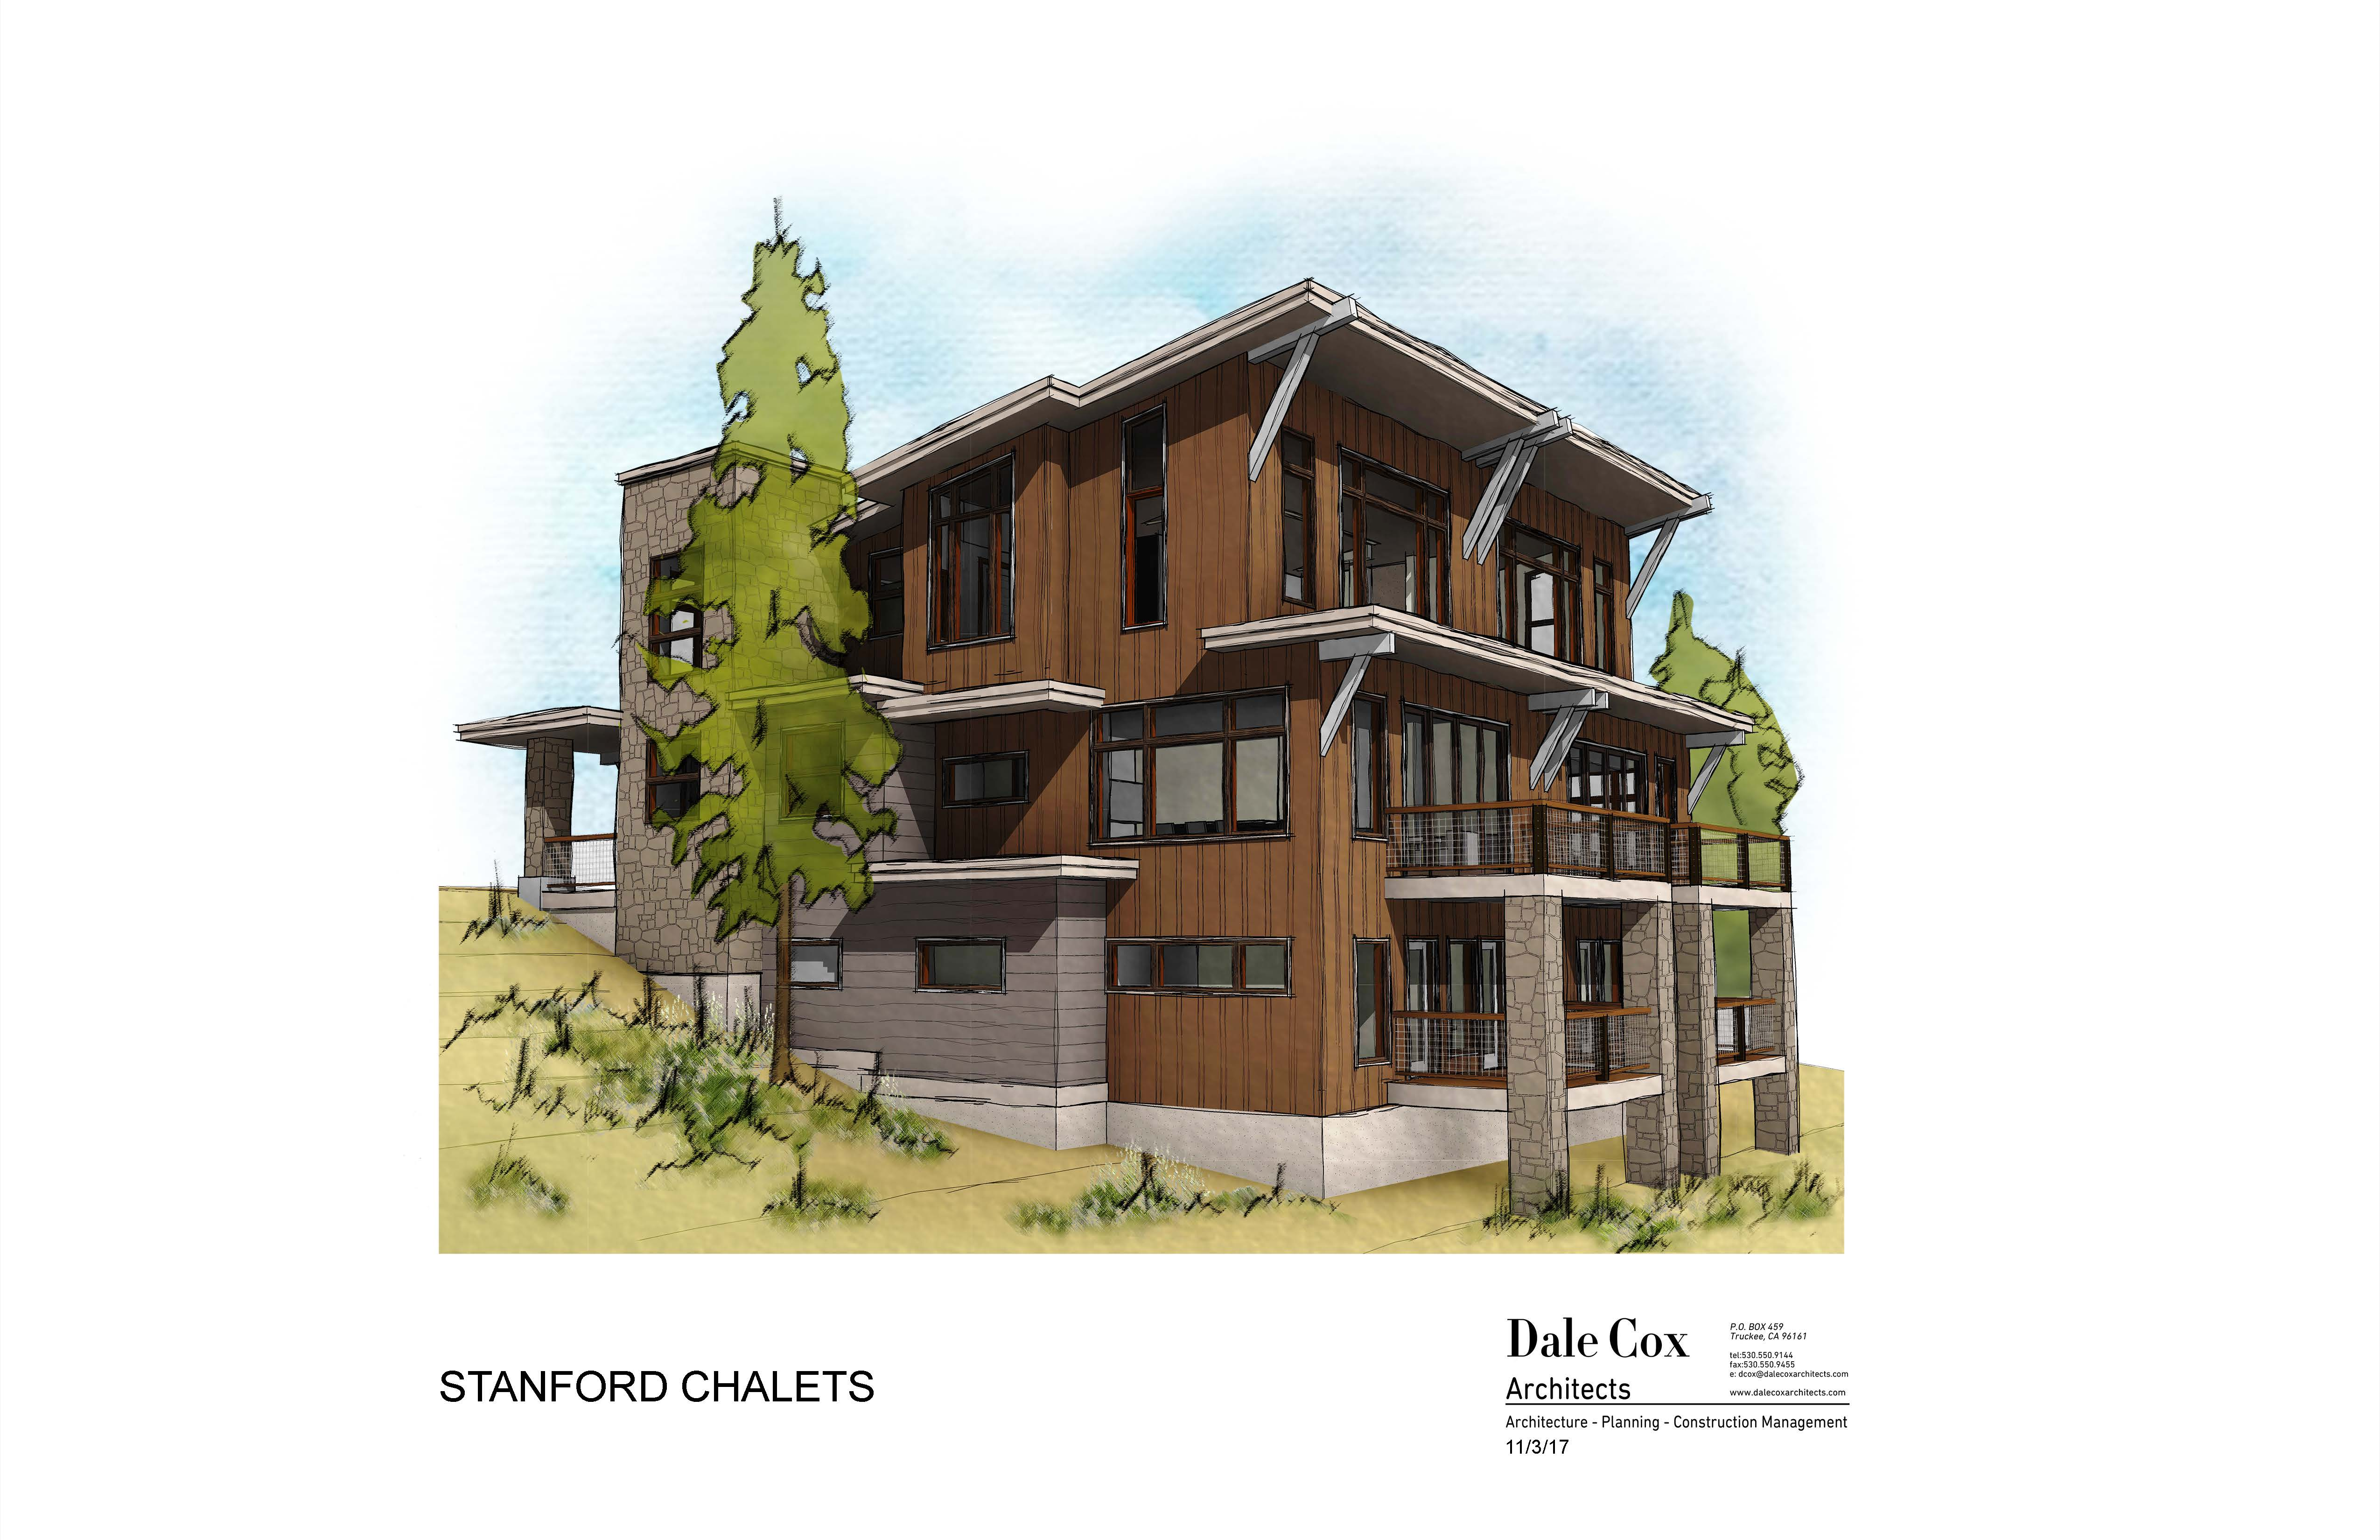 STANFORD CHALET A Modern- Perspective.3 11-3-17